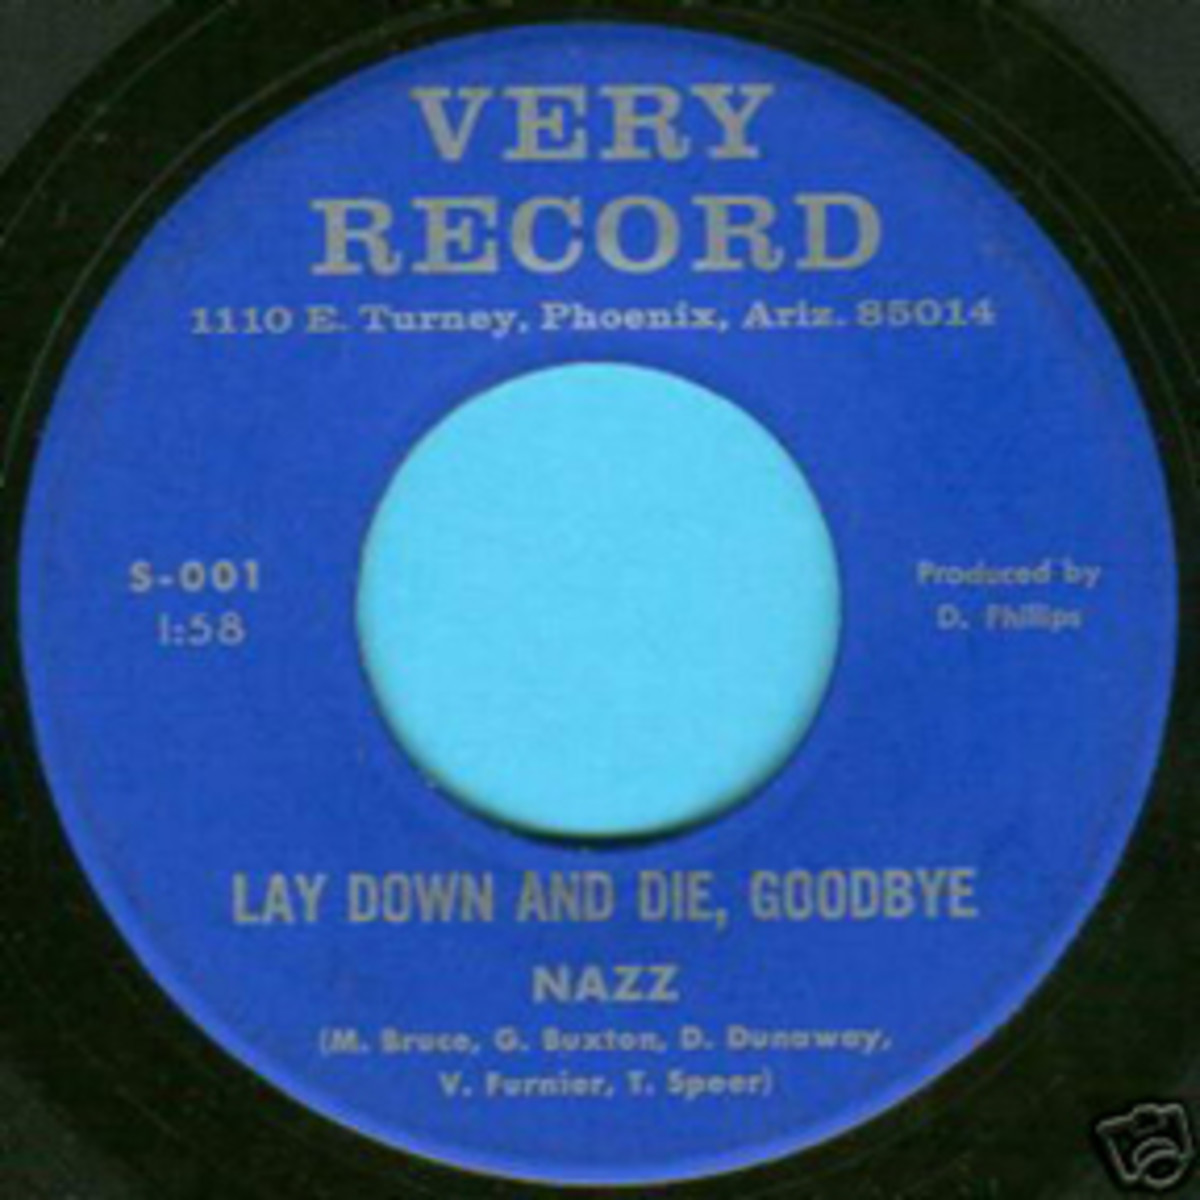 Alice Cooper Band Land Down And Die Goodbye